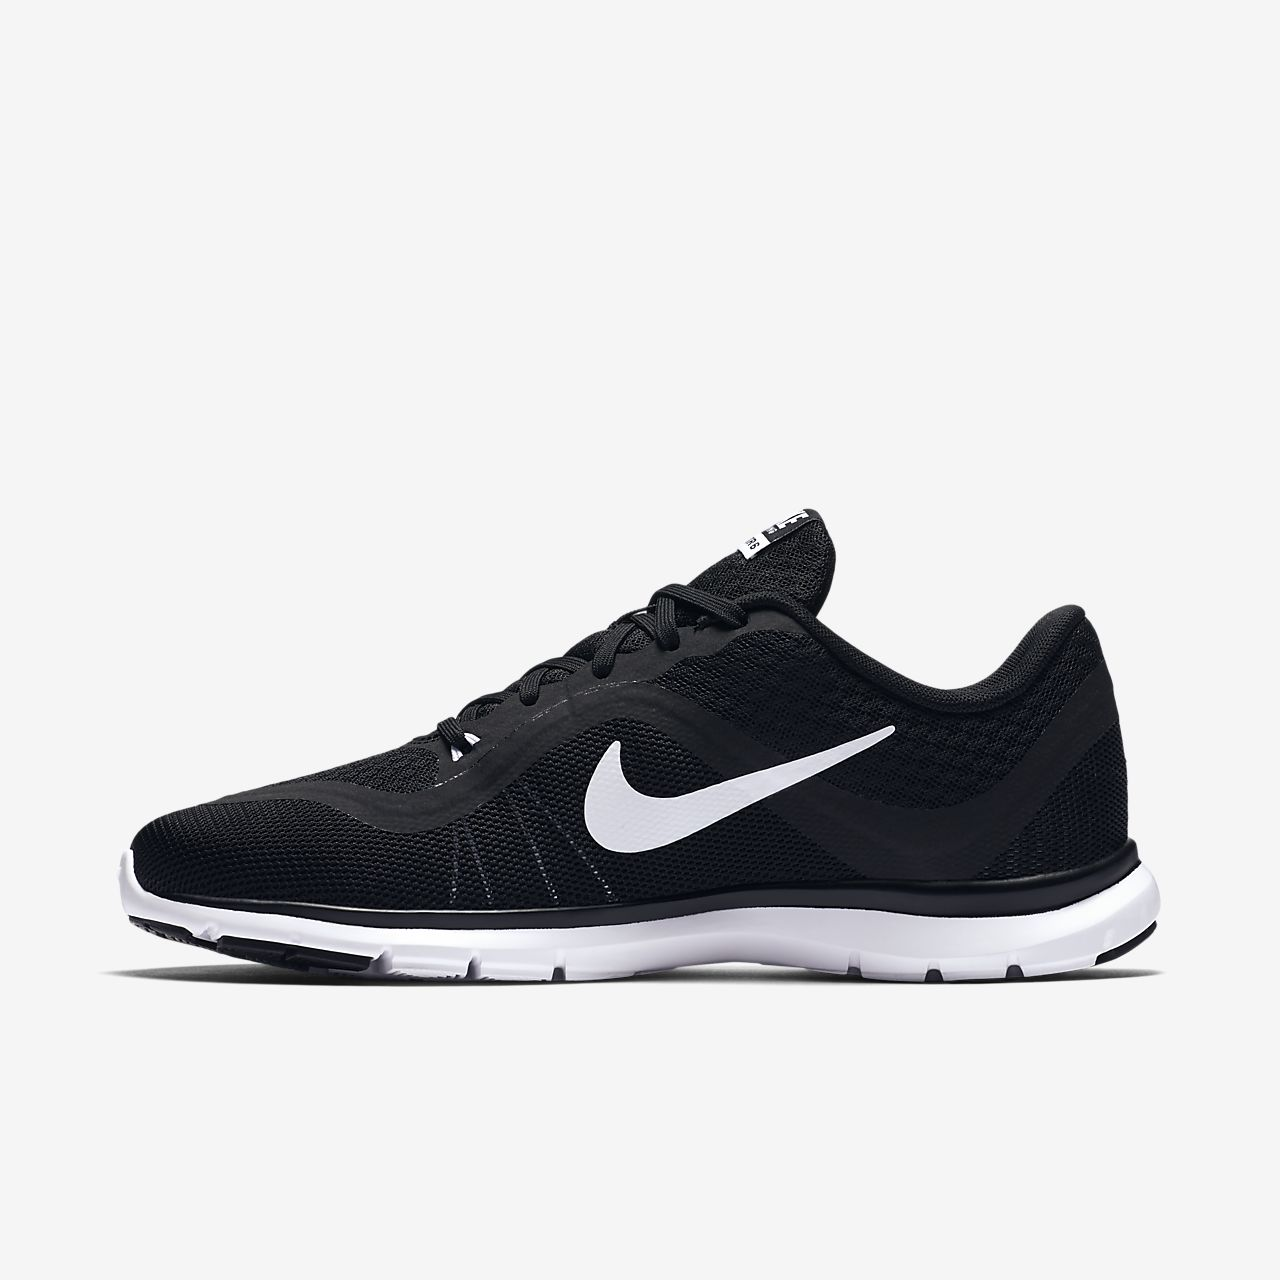 Nike Women S Flex  Cross Training Shoe